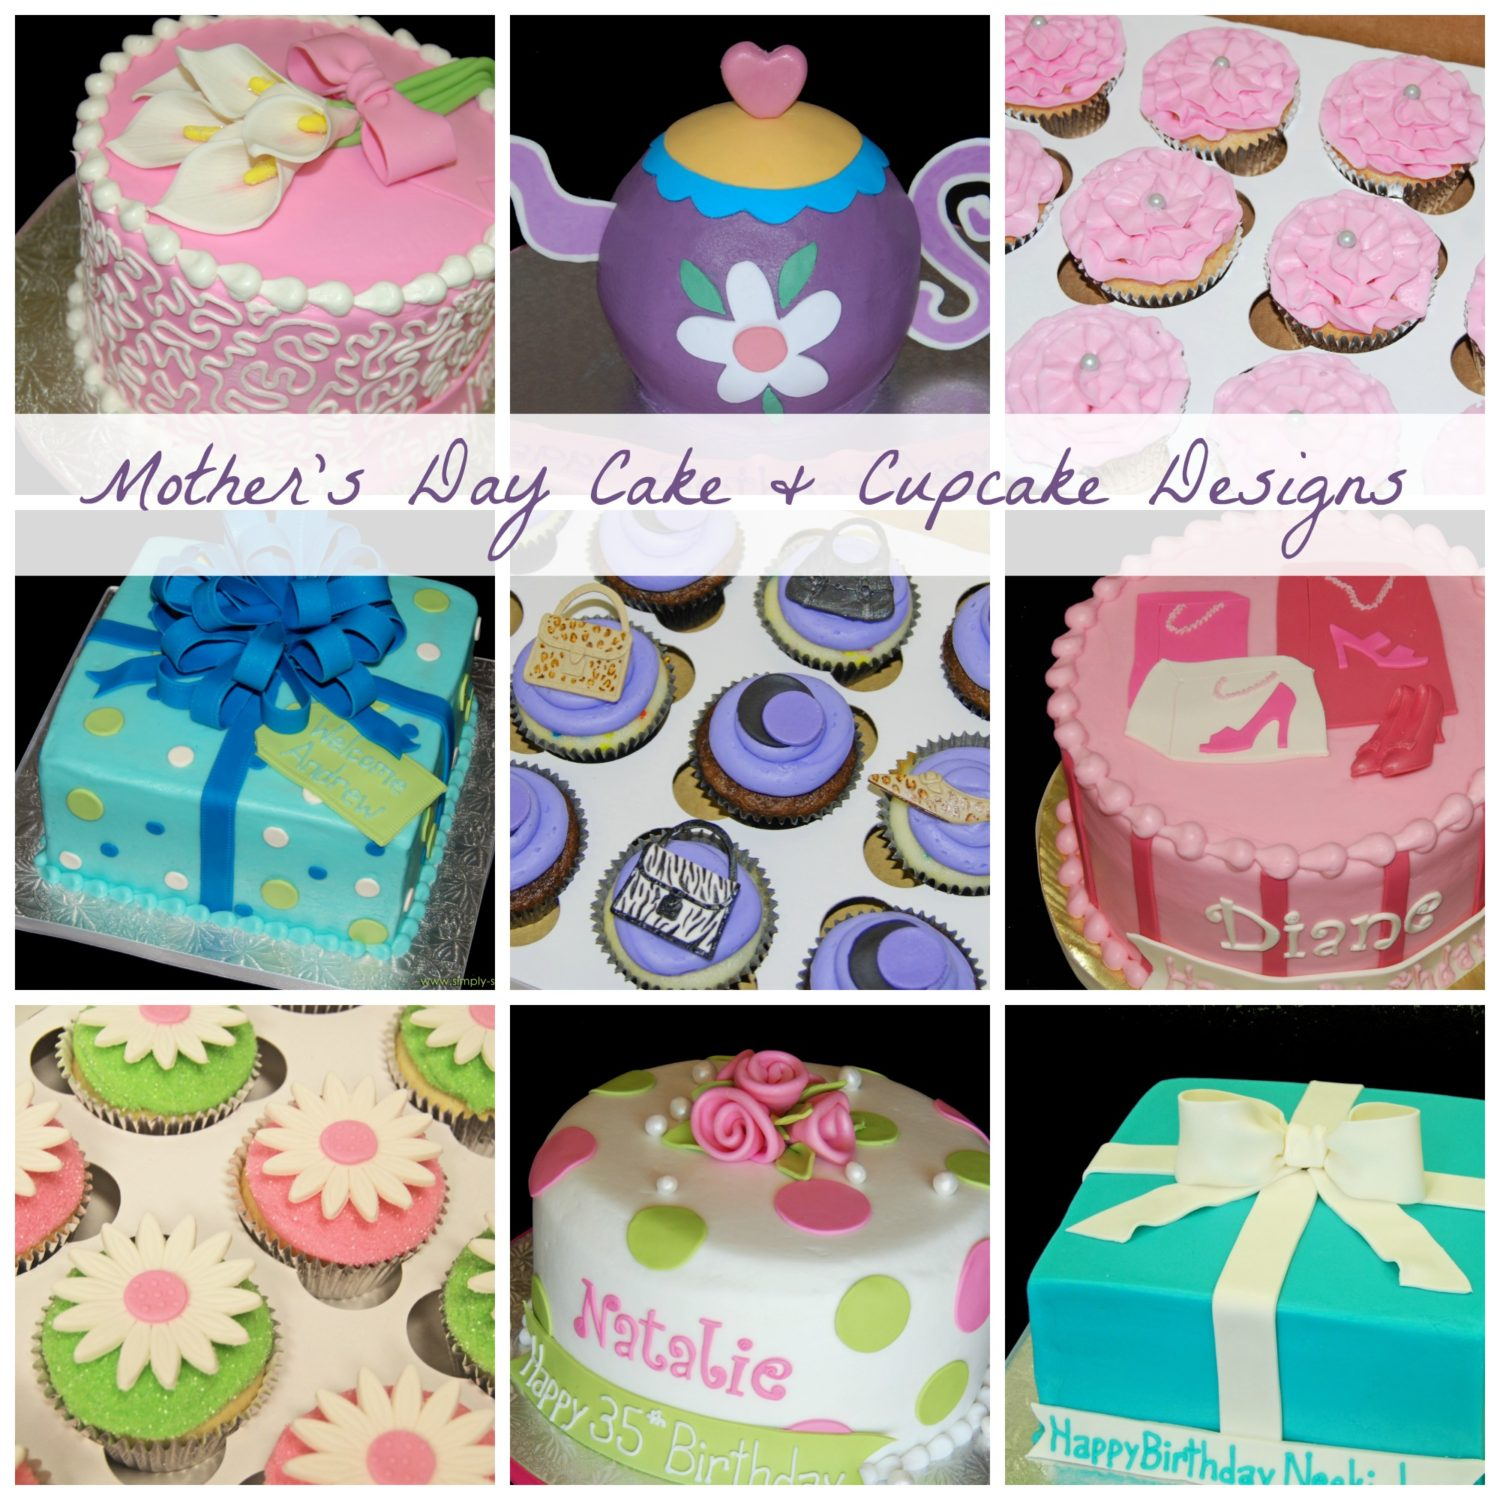 Mothers Day Cake and Cupcake Design Ideas